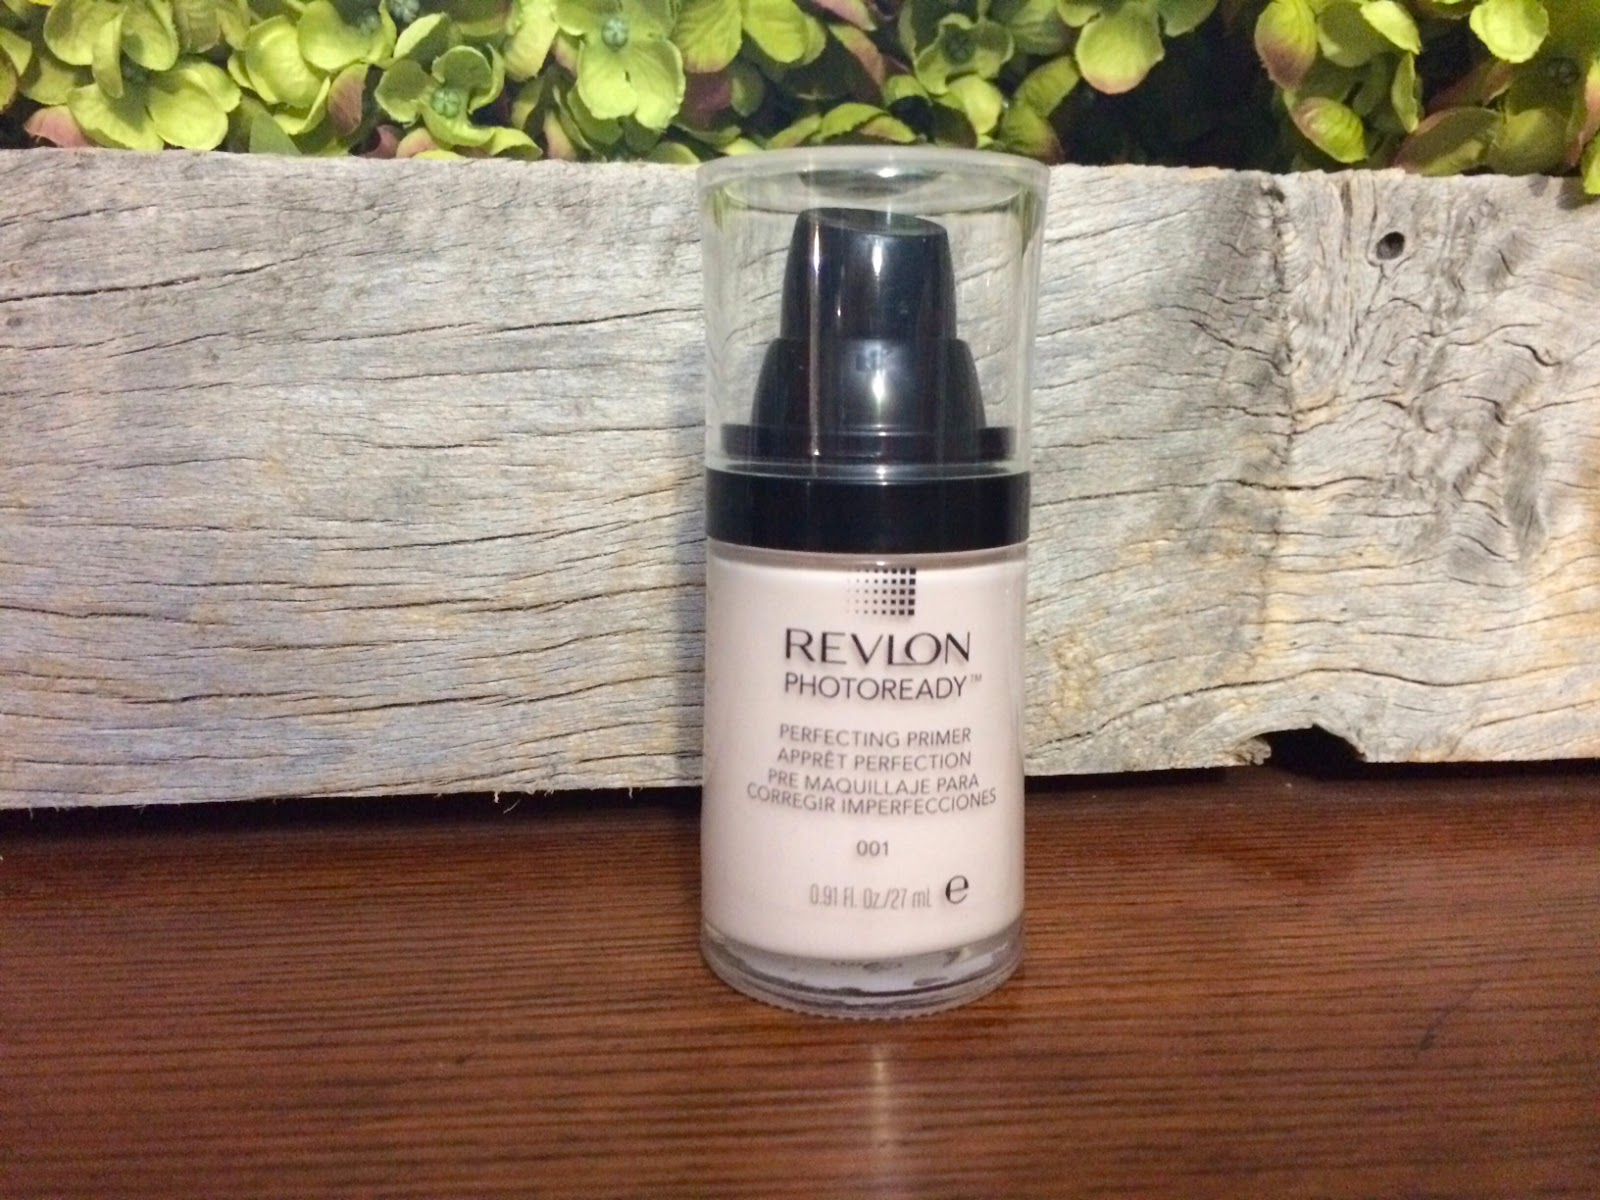 Revlon Photo Ready Primer Review